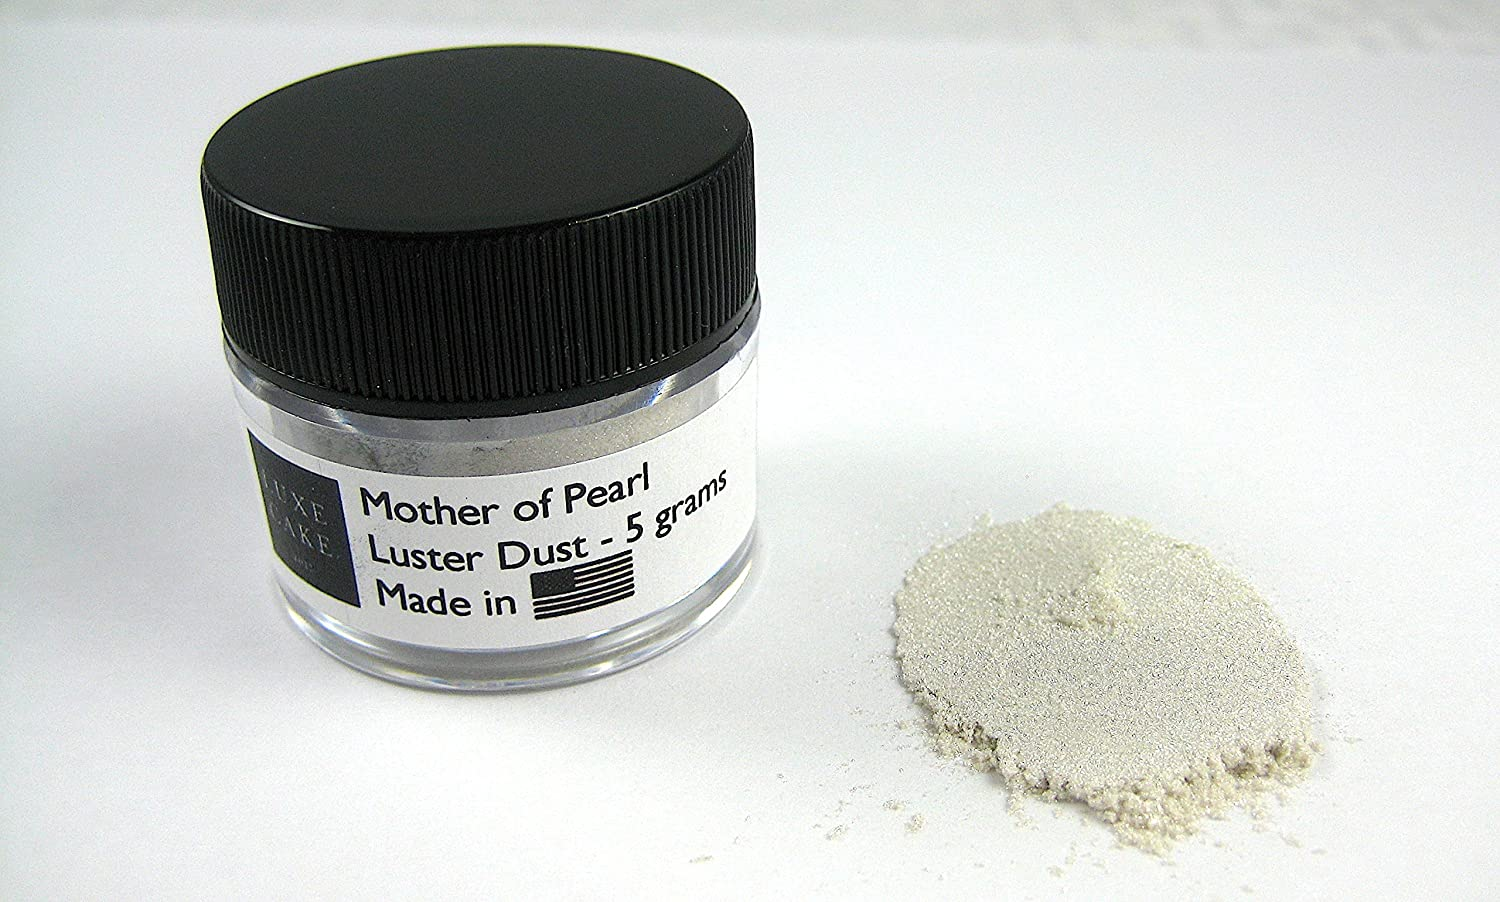 Mother of Pearl Luxury Dust, 5 grams, USA Made